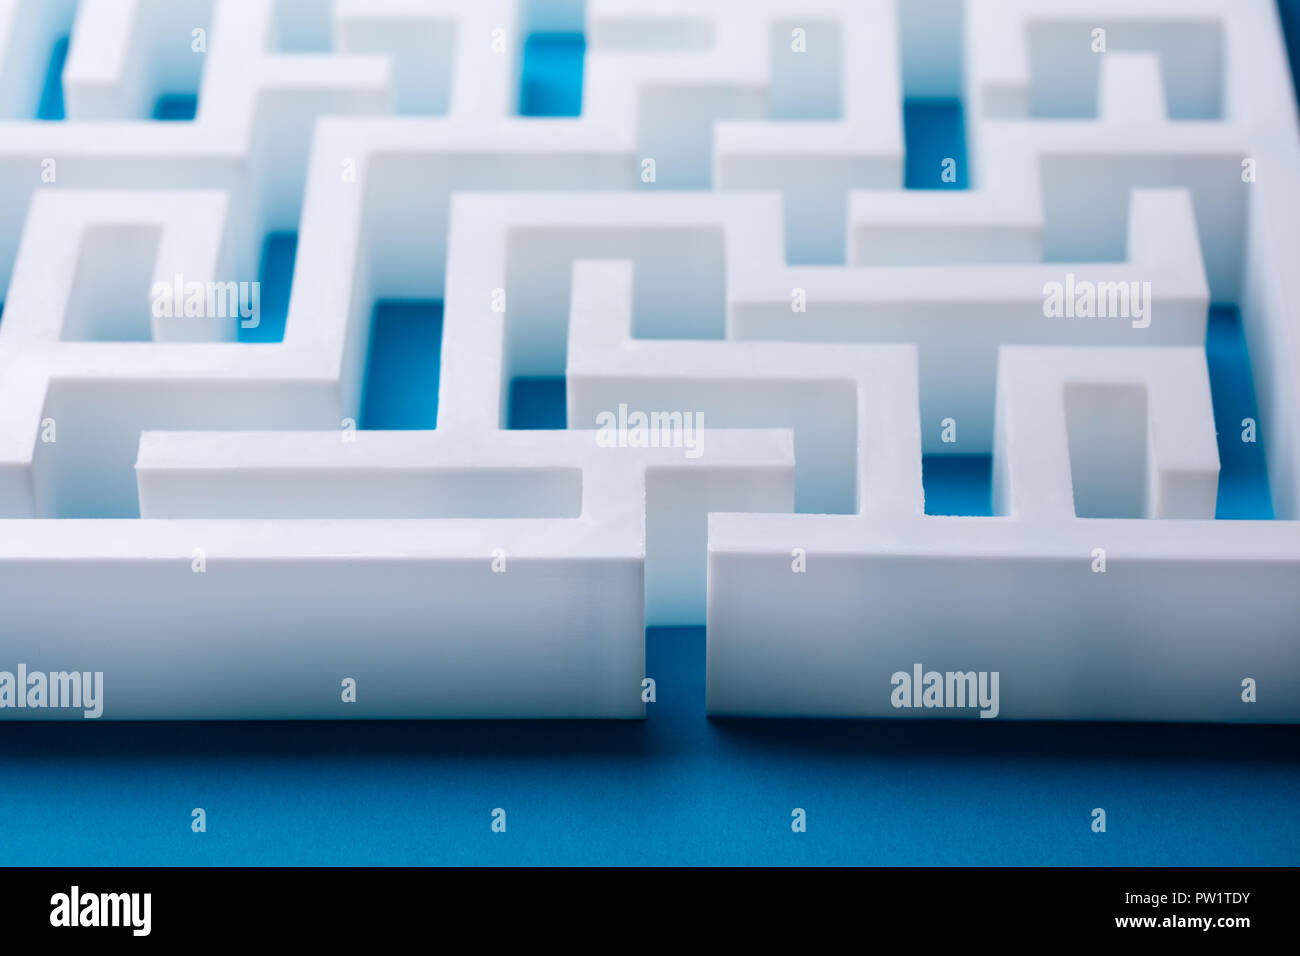 Overhead View Of Abstract Empty White Labyrinth - Stock Image